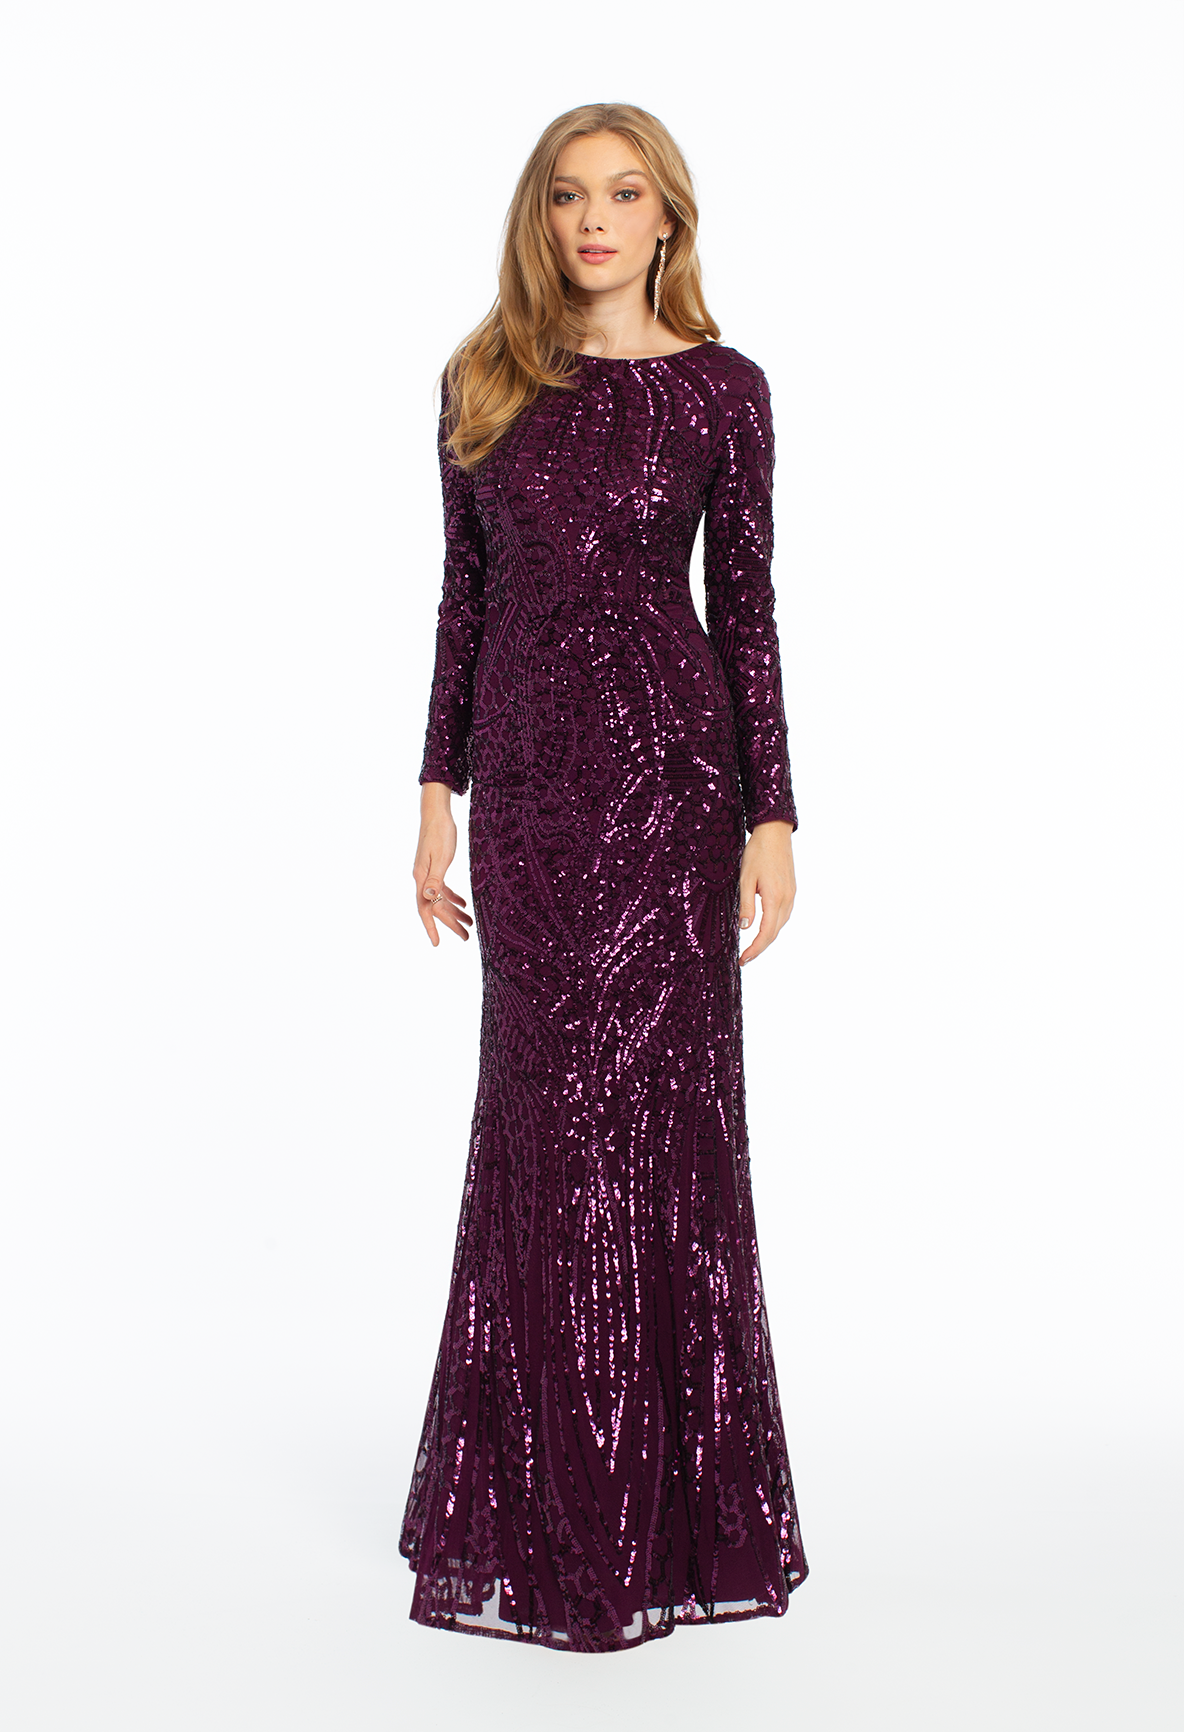 Sheath dresses for wedding guest  Long Sleeve All Over Sequin Dress  WEDDING GUEST STYLE  Pinterest